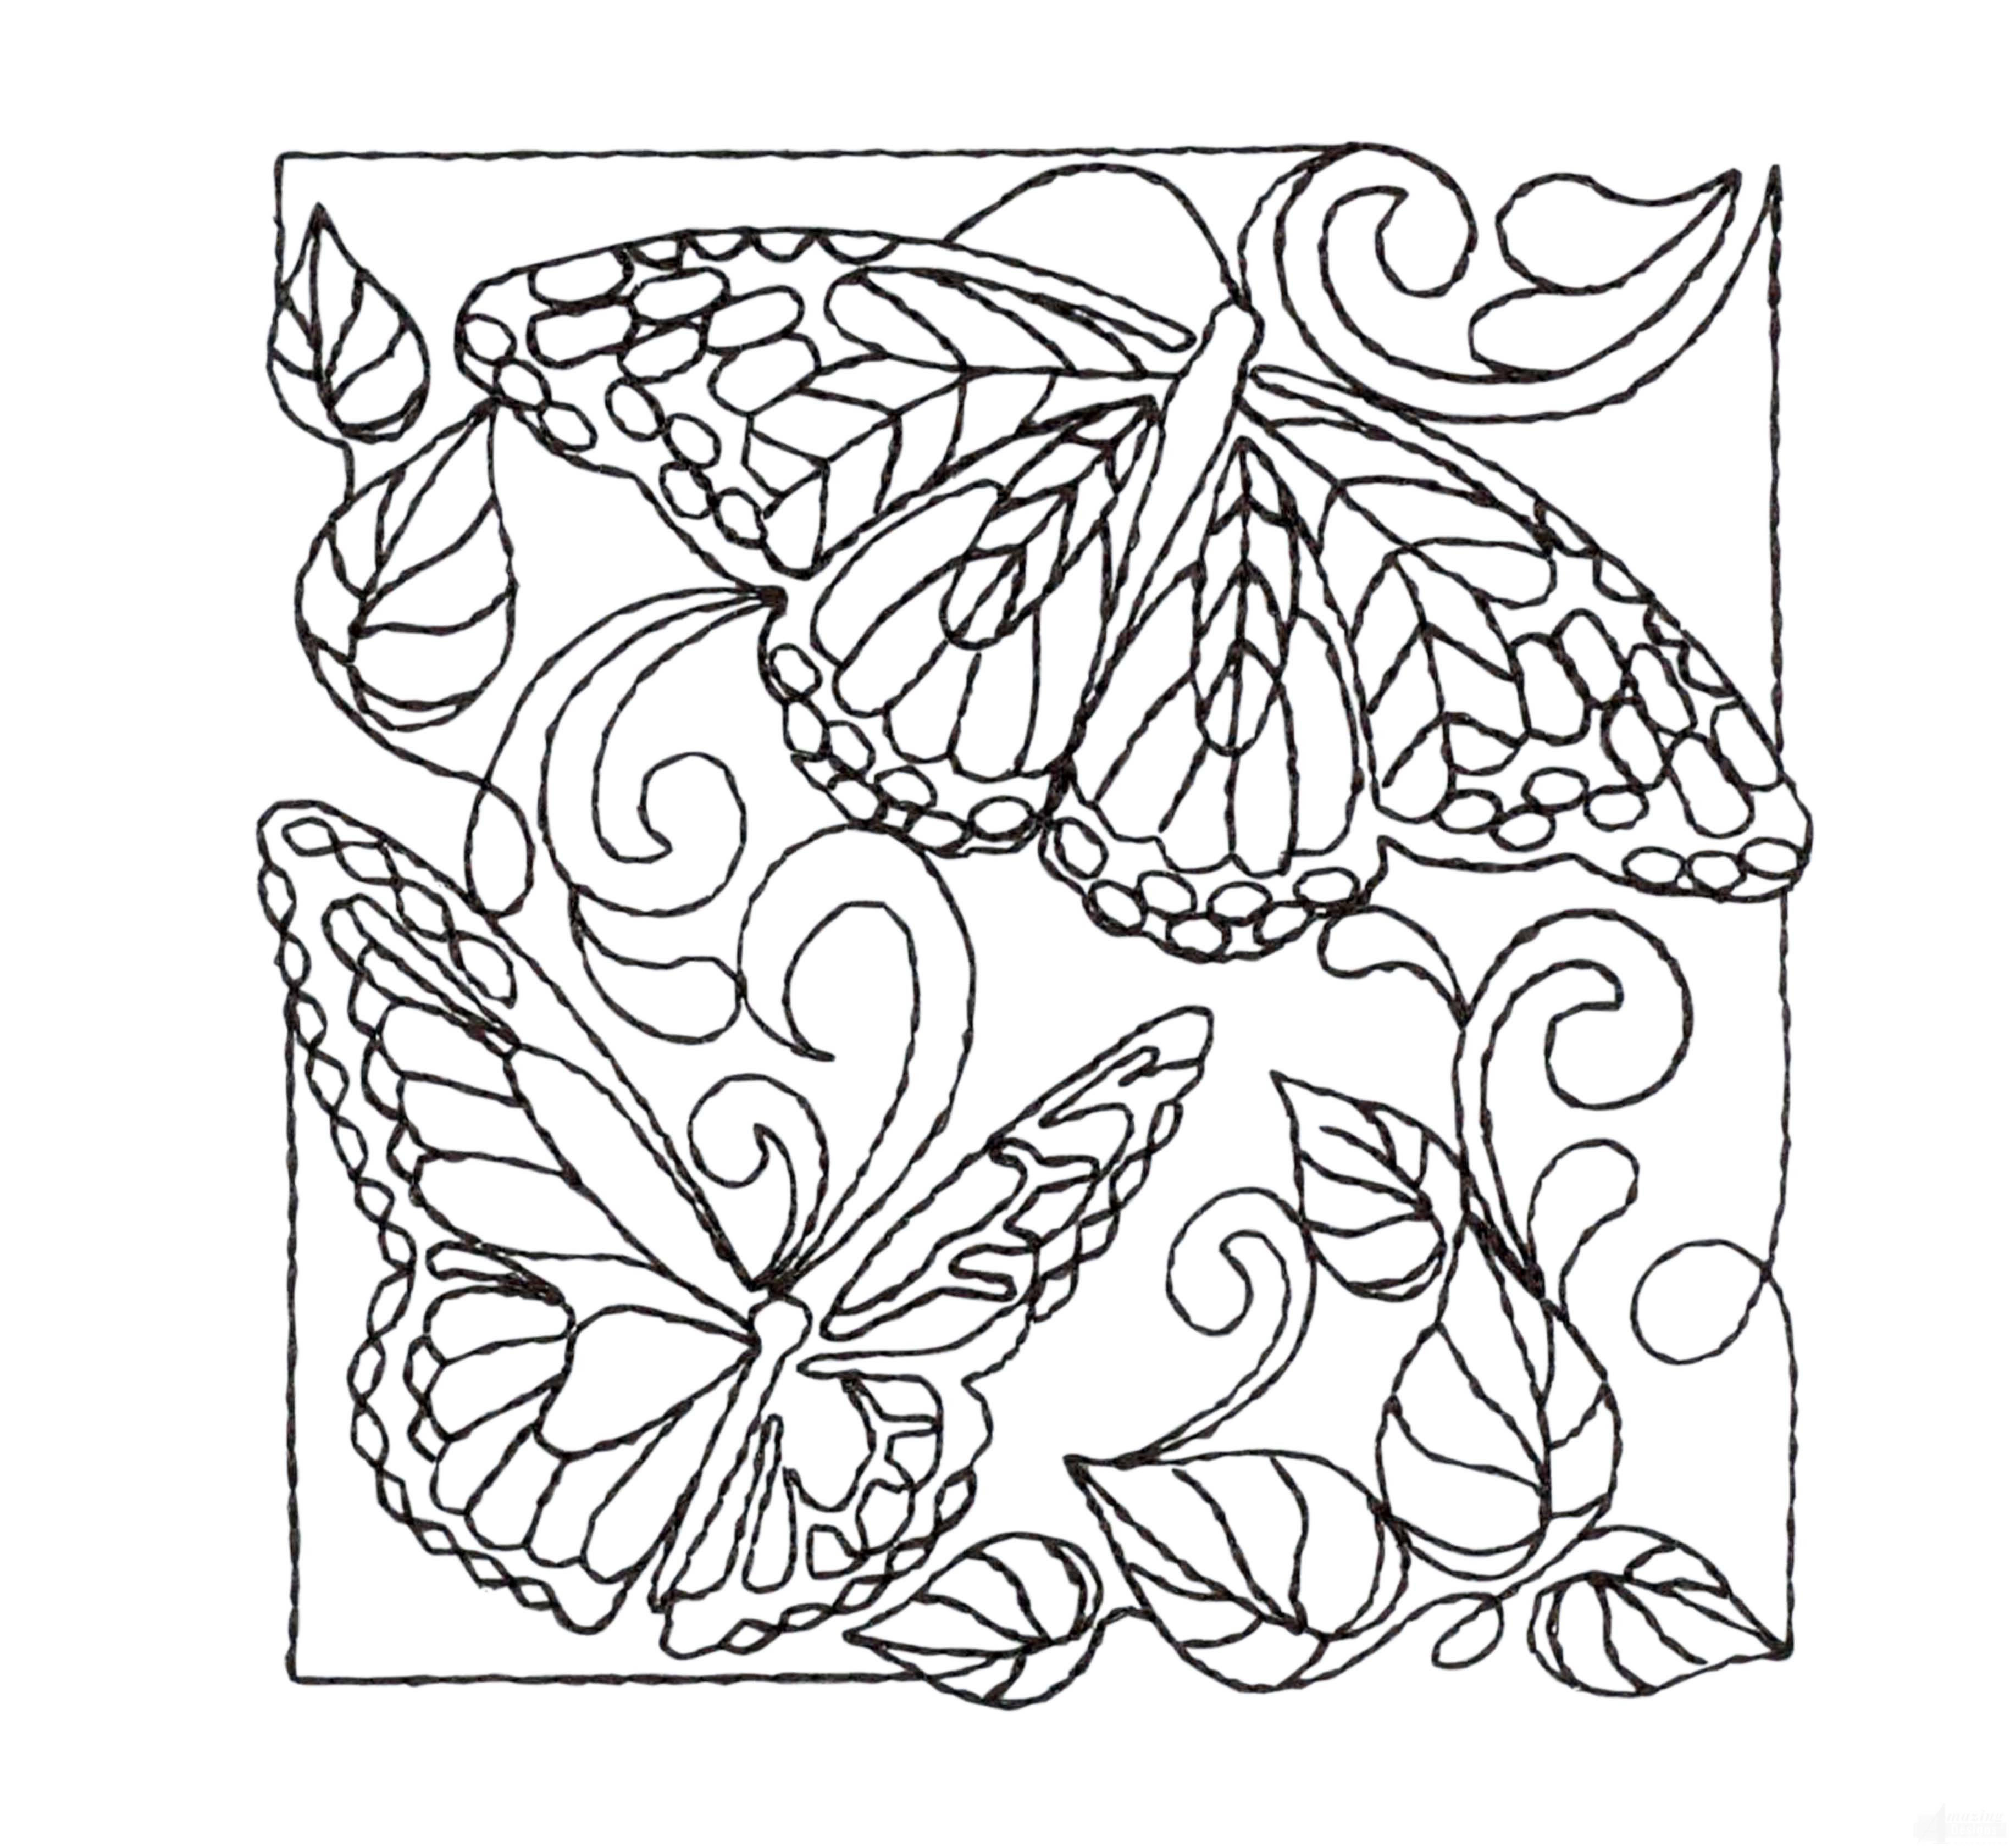 Creative Quilting Outlines Flora and Fauna Embroidery Design